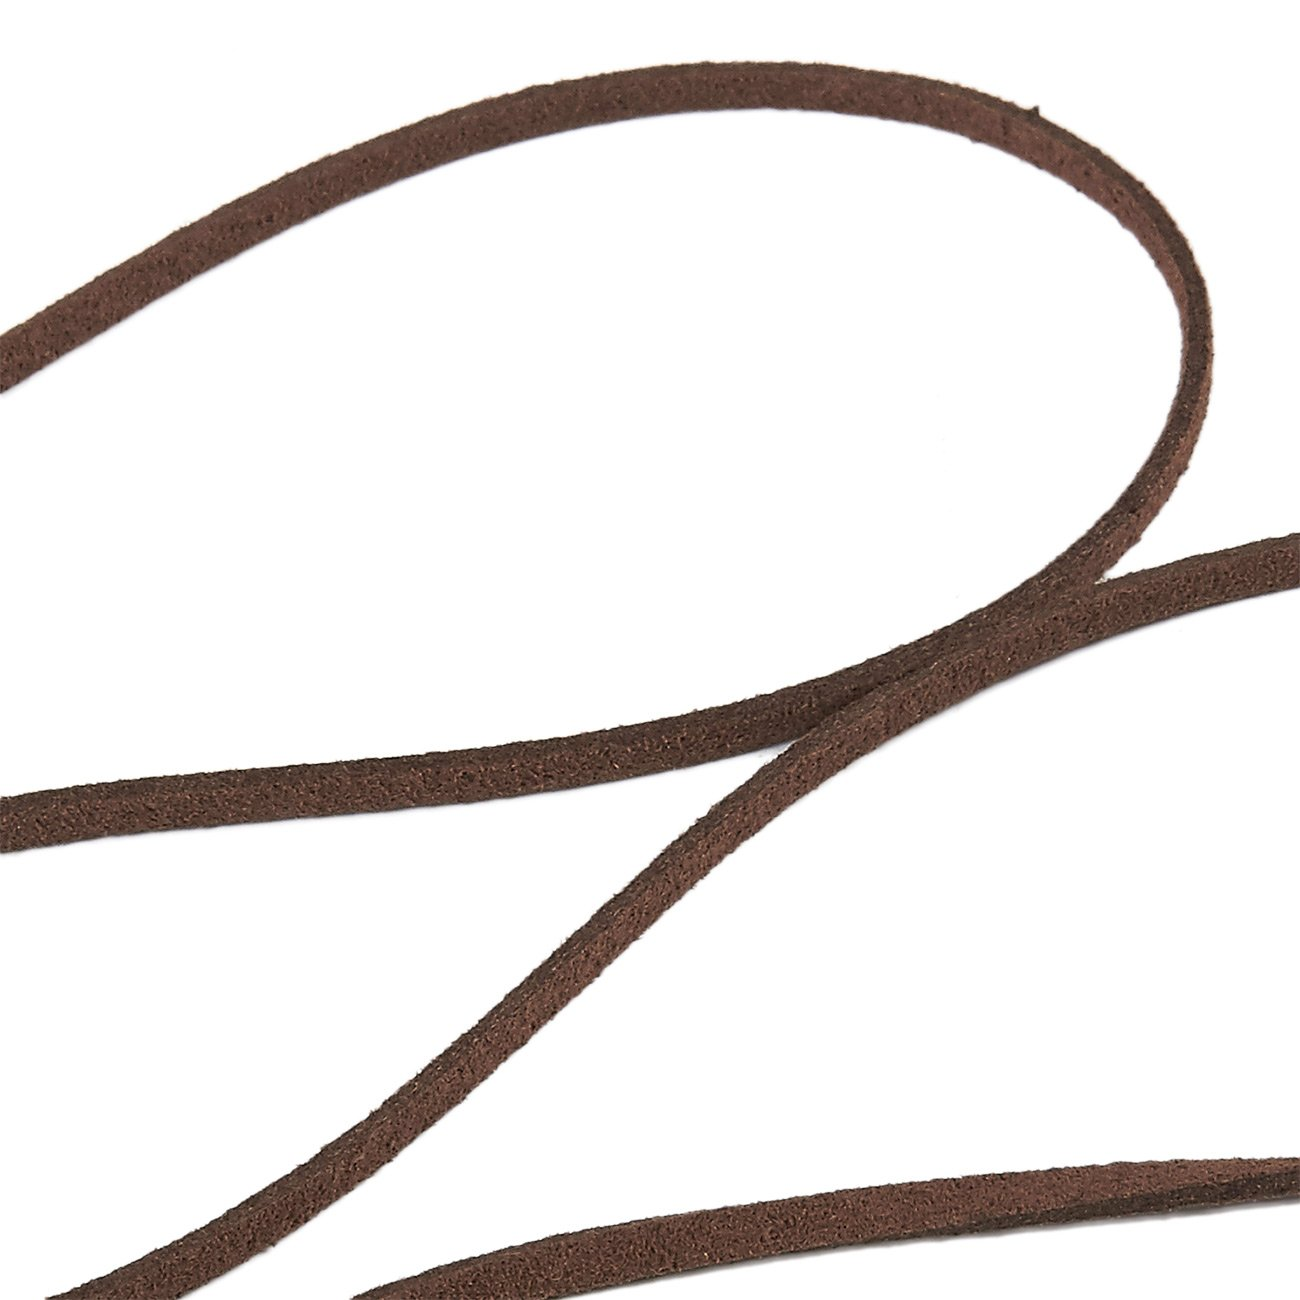 100-Yard Suede Leather Strap Beading Cord 0.08 Inches Wide Faux Leather Cord Caramel Flat Leather Lace Spool